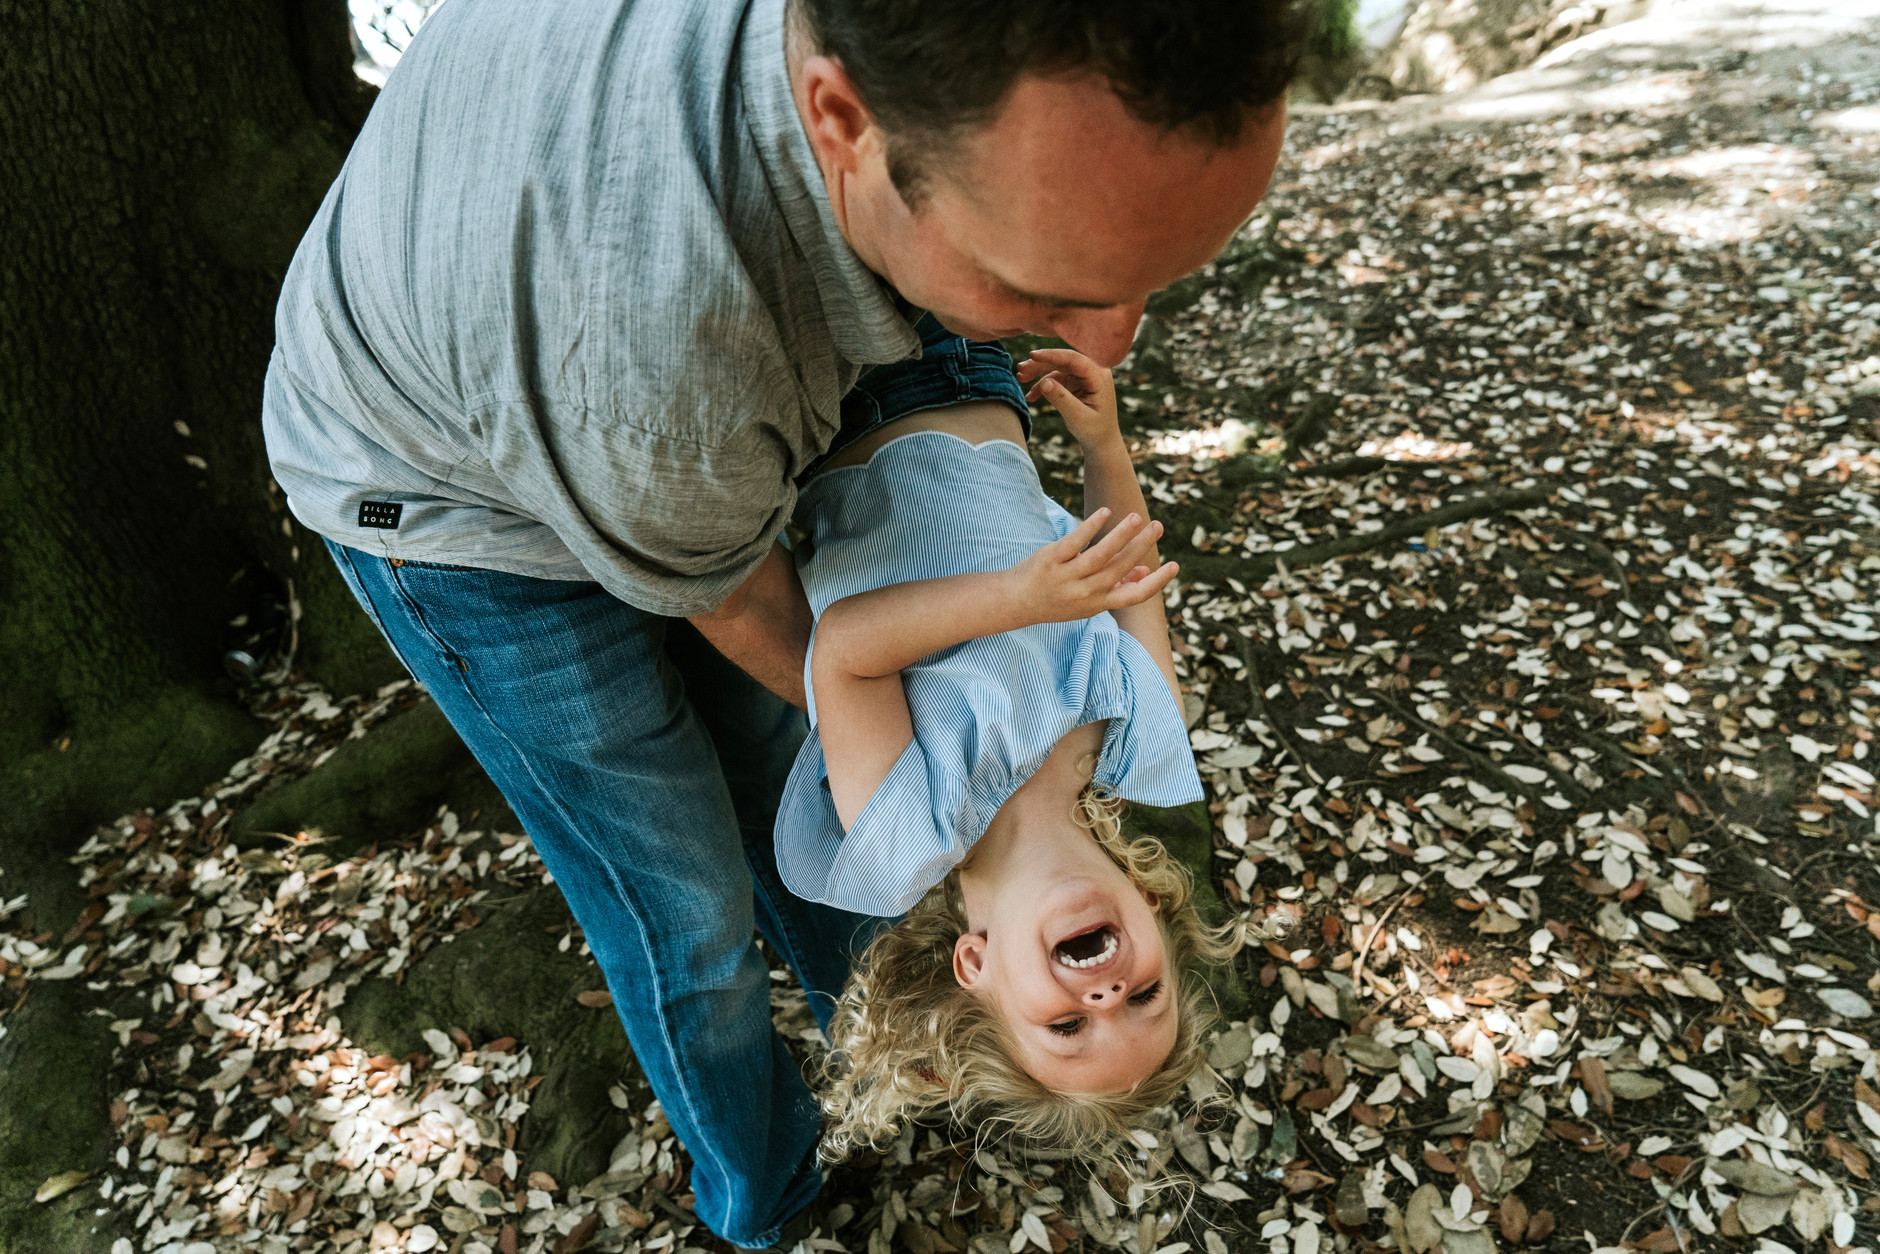 Little girl laughing while her dad swings her upside down: fun